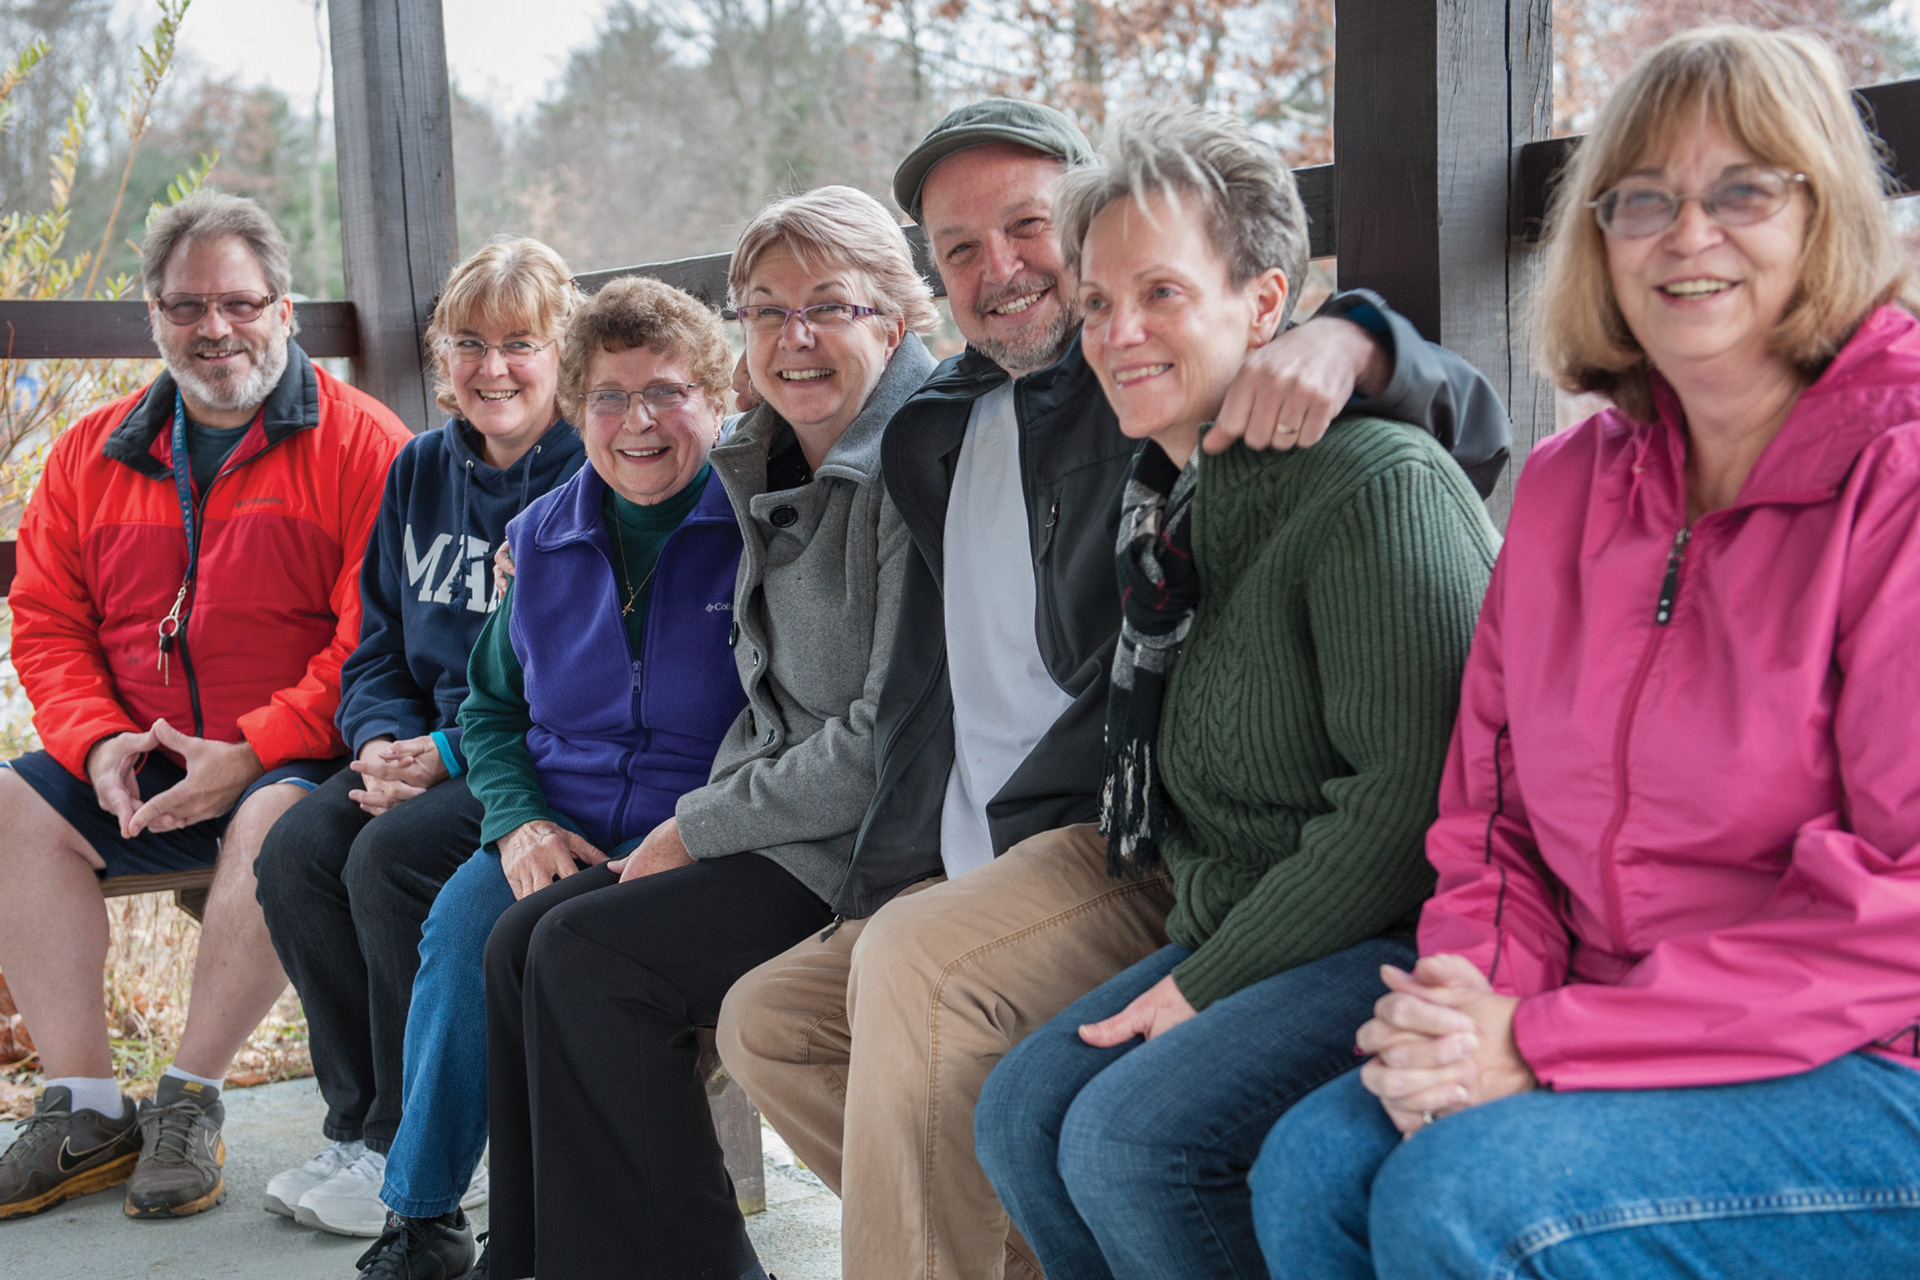 A line of smiling adults, seated